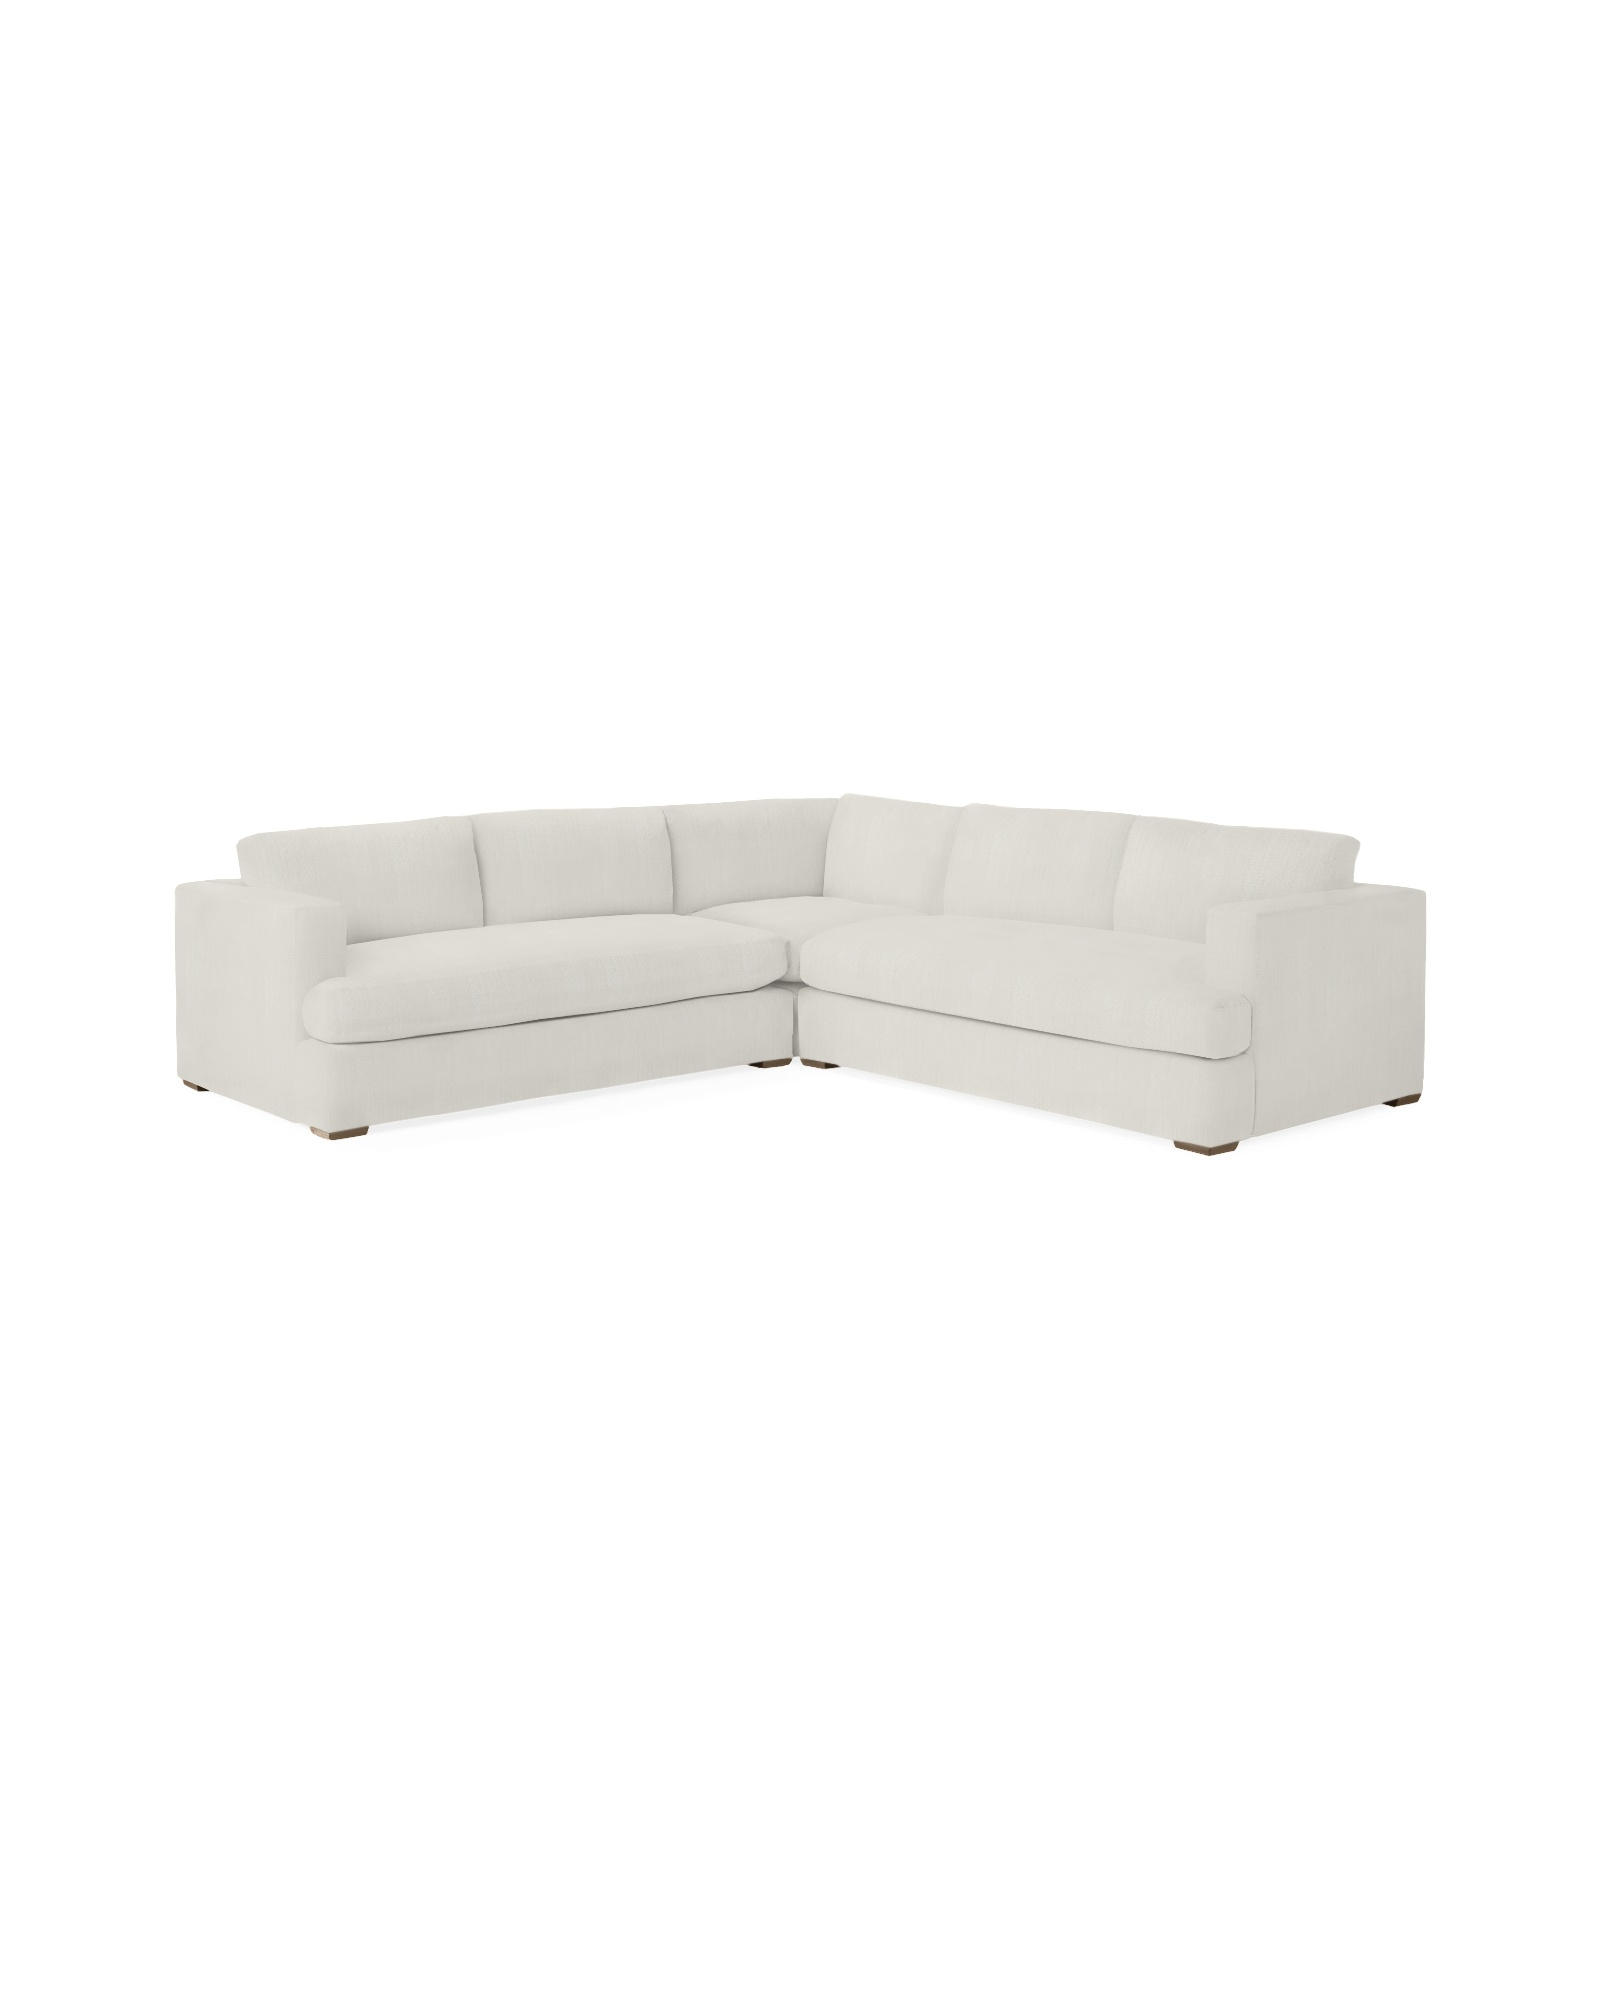 Norfolk Corner Sectional - Perennials® Chalk Basketweave,